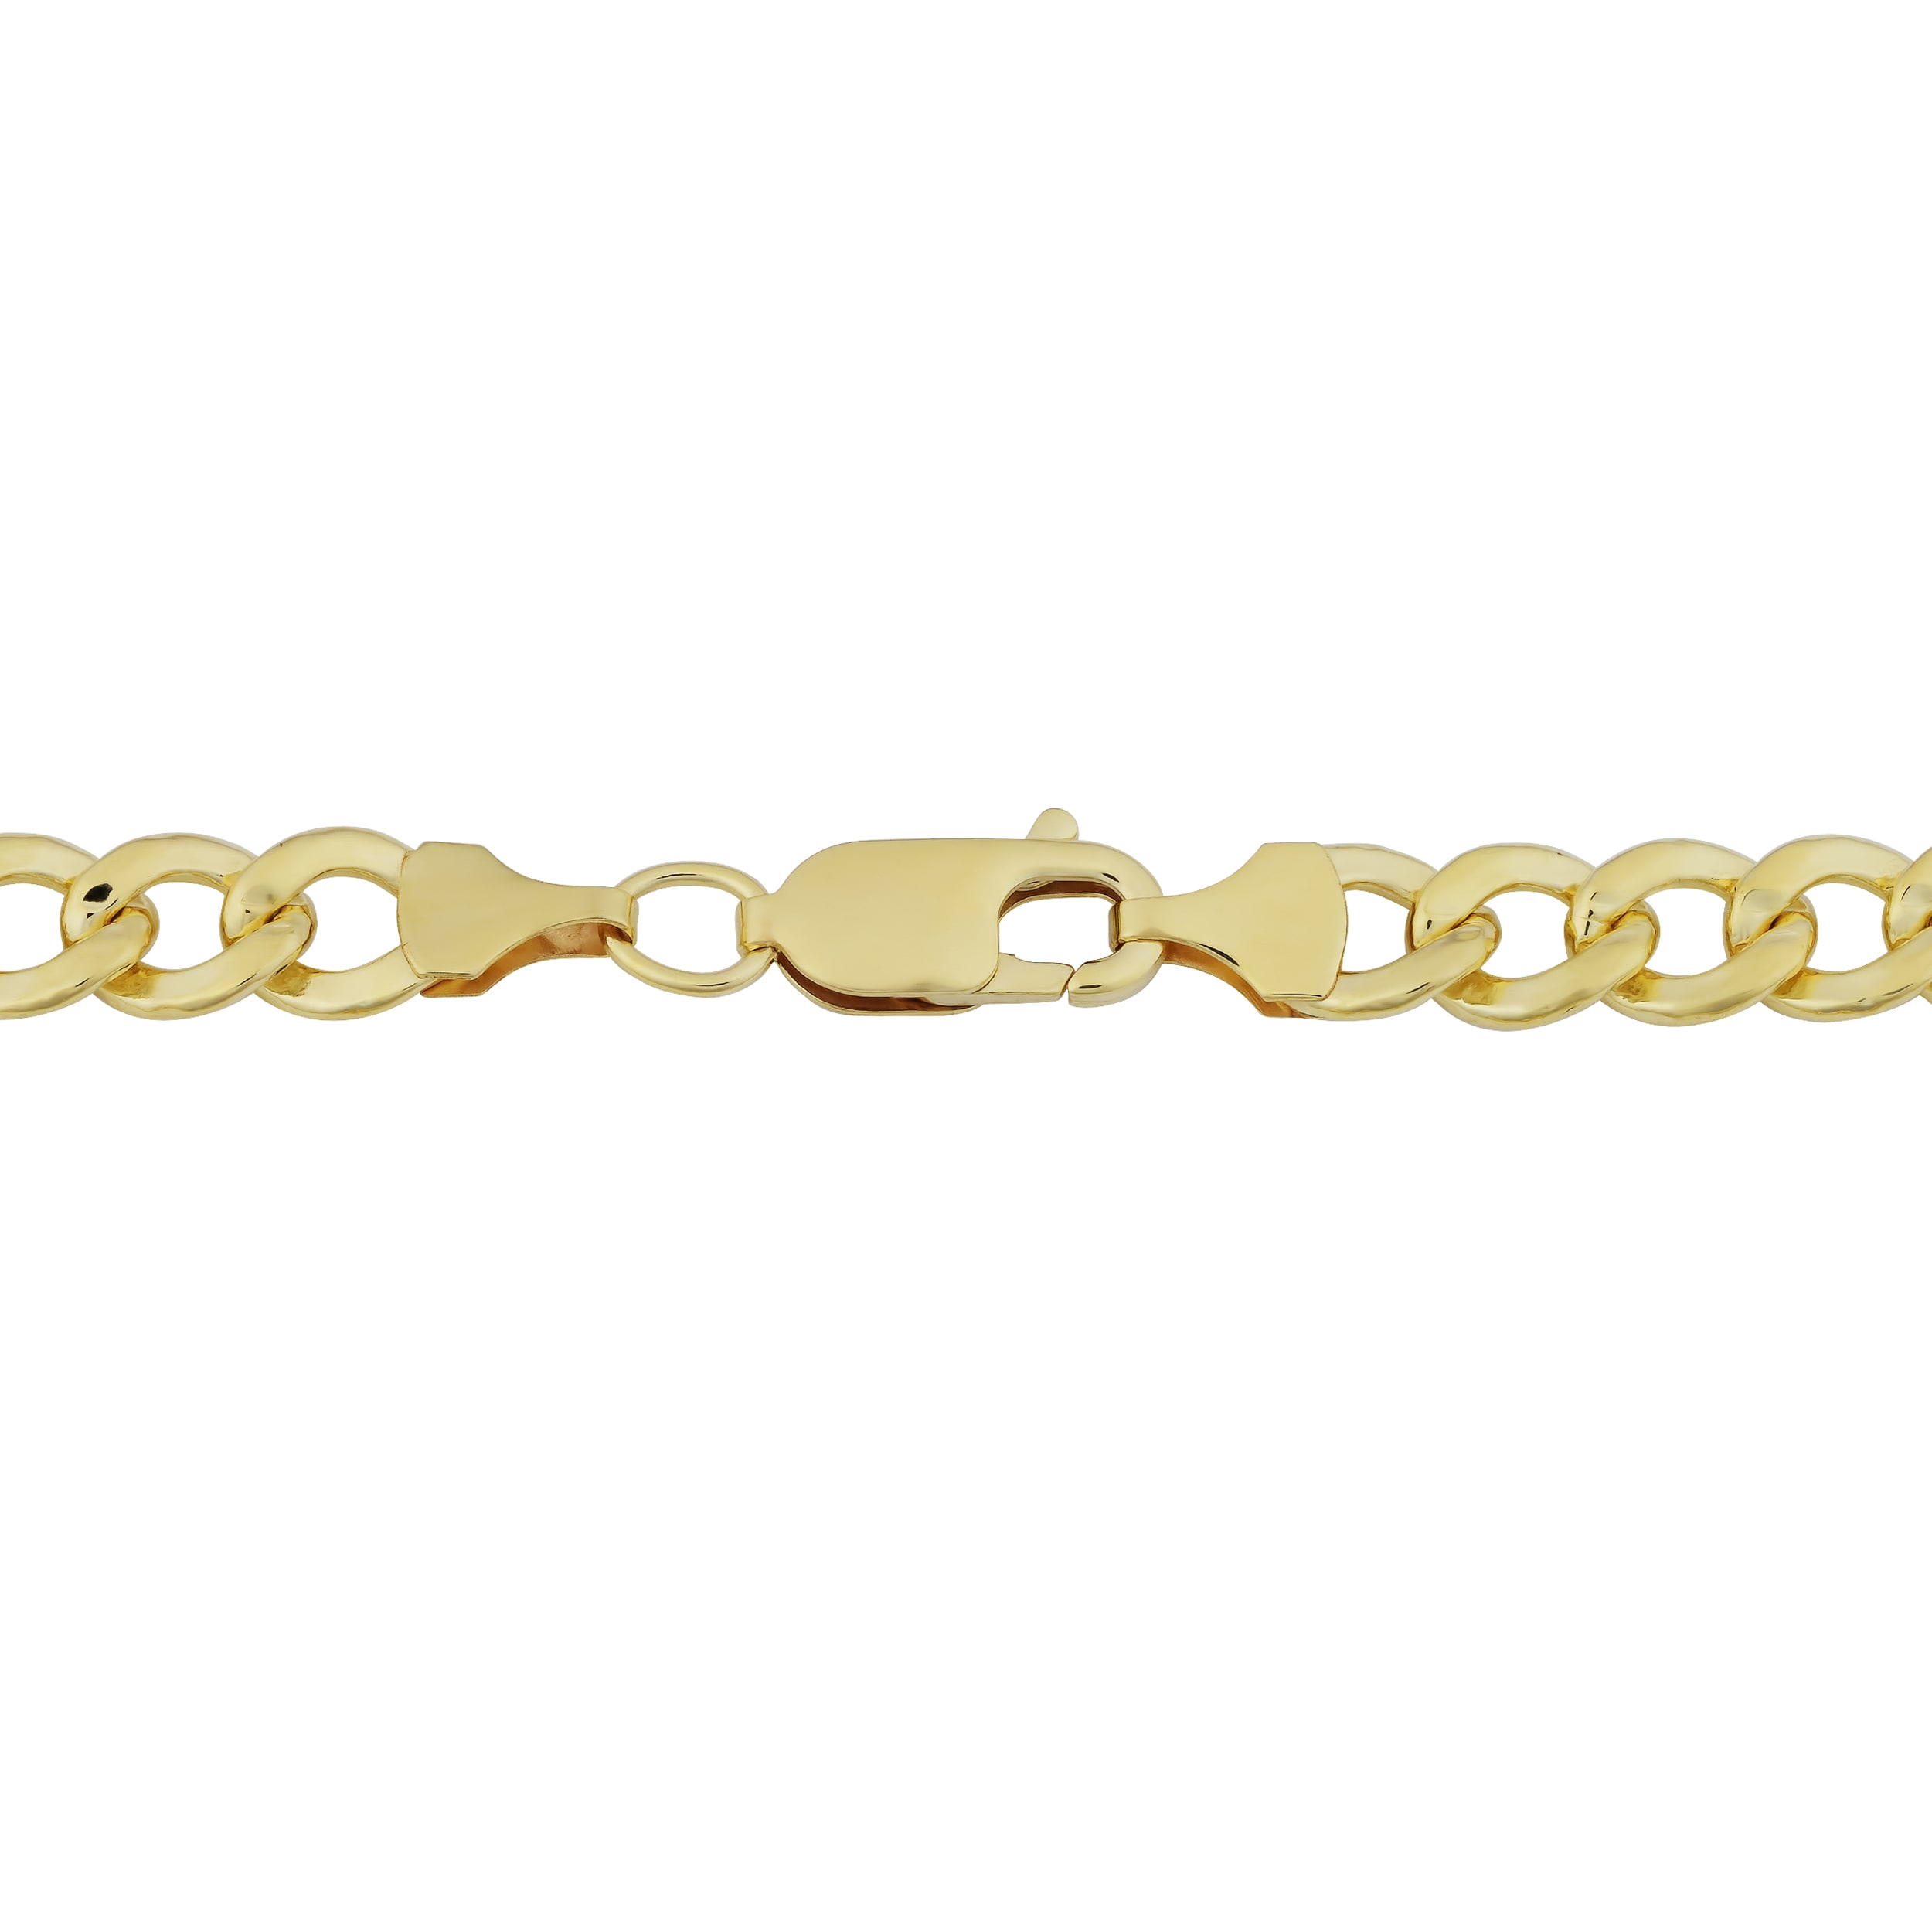 chain gold s com walmart women singapore simply yellow chains ip